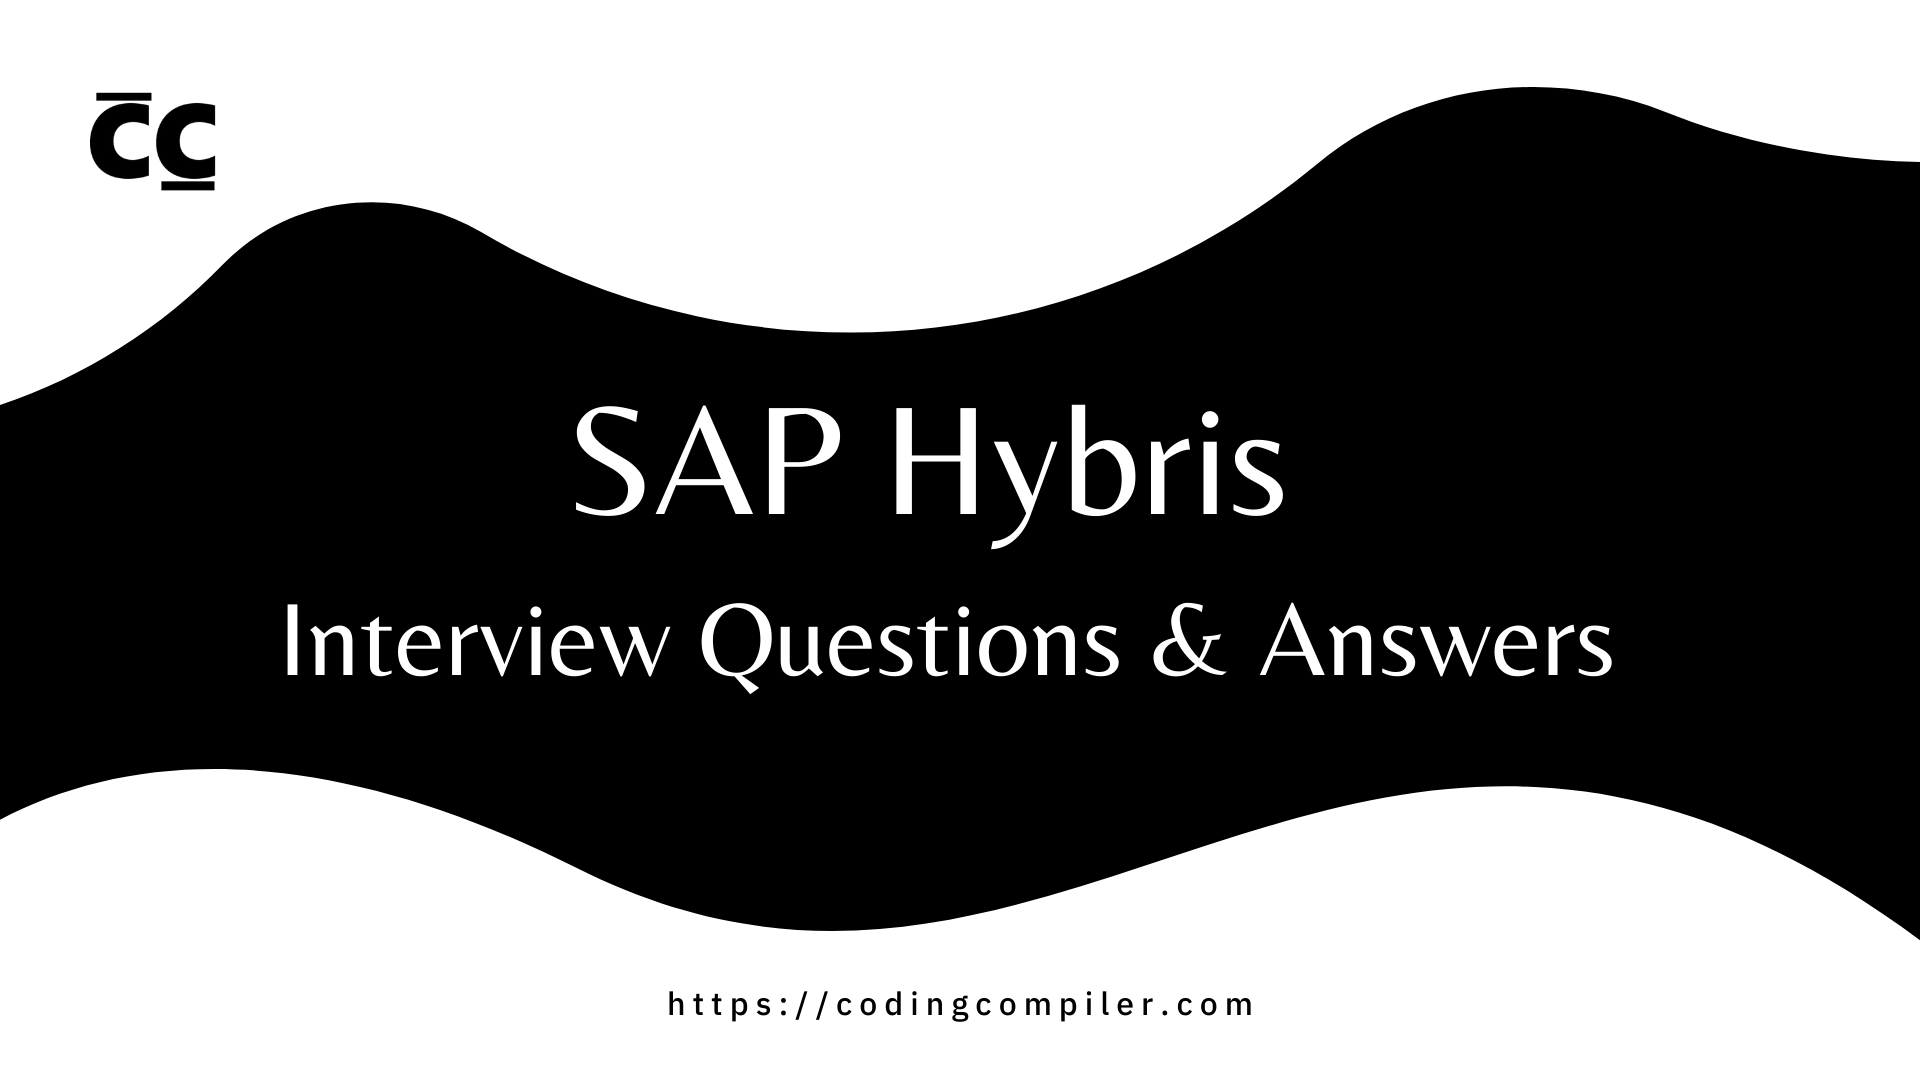 SAP Hybris Interview Questions and Answers